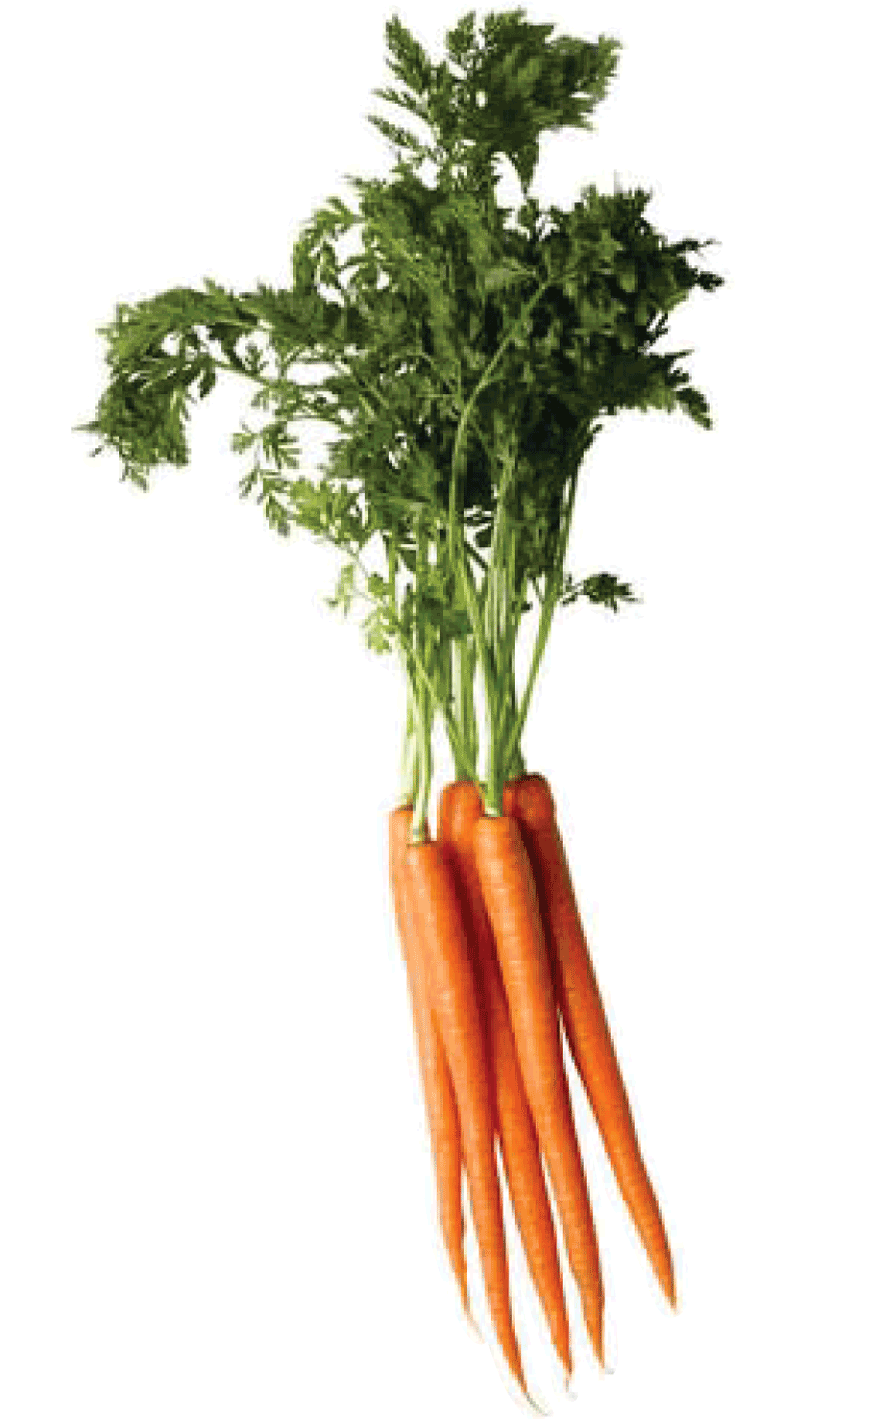 Carrot PNG - 19927